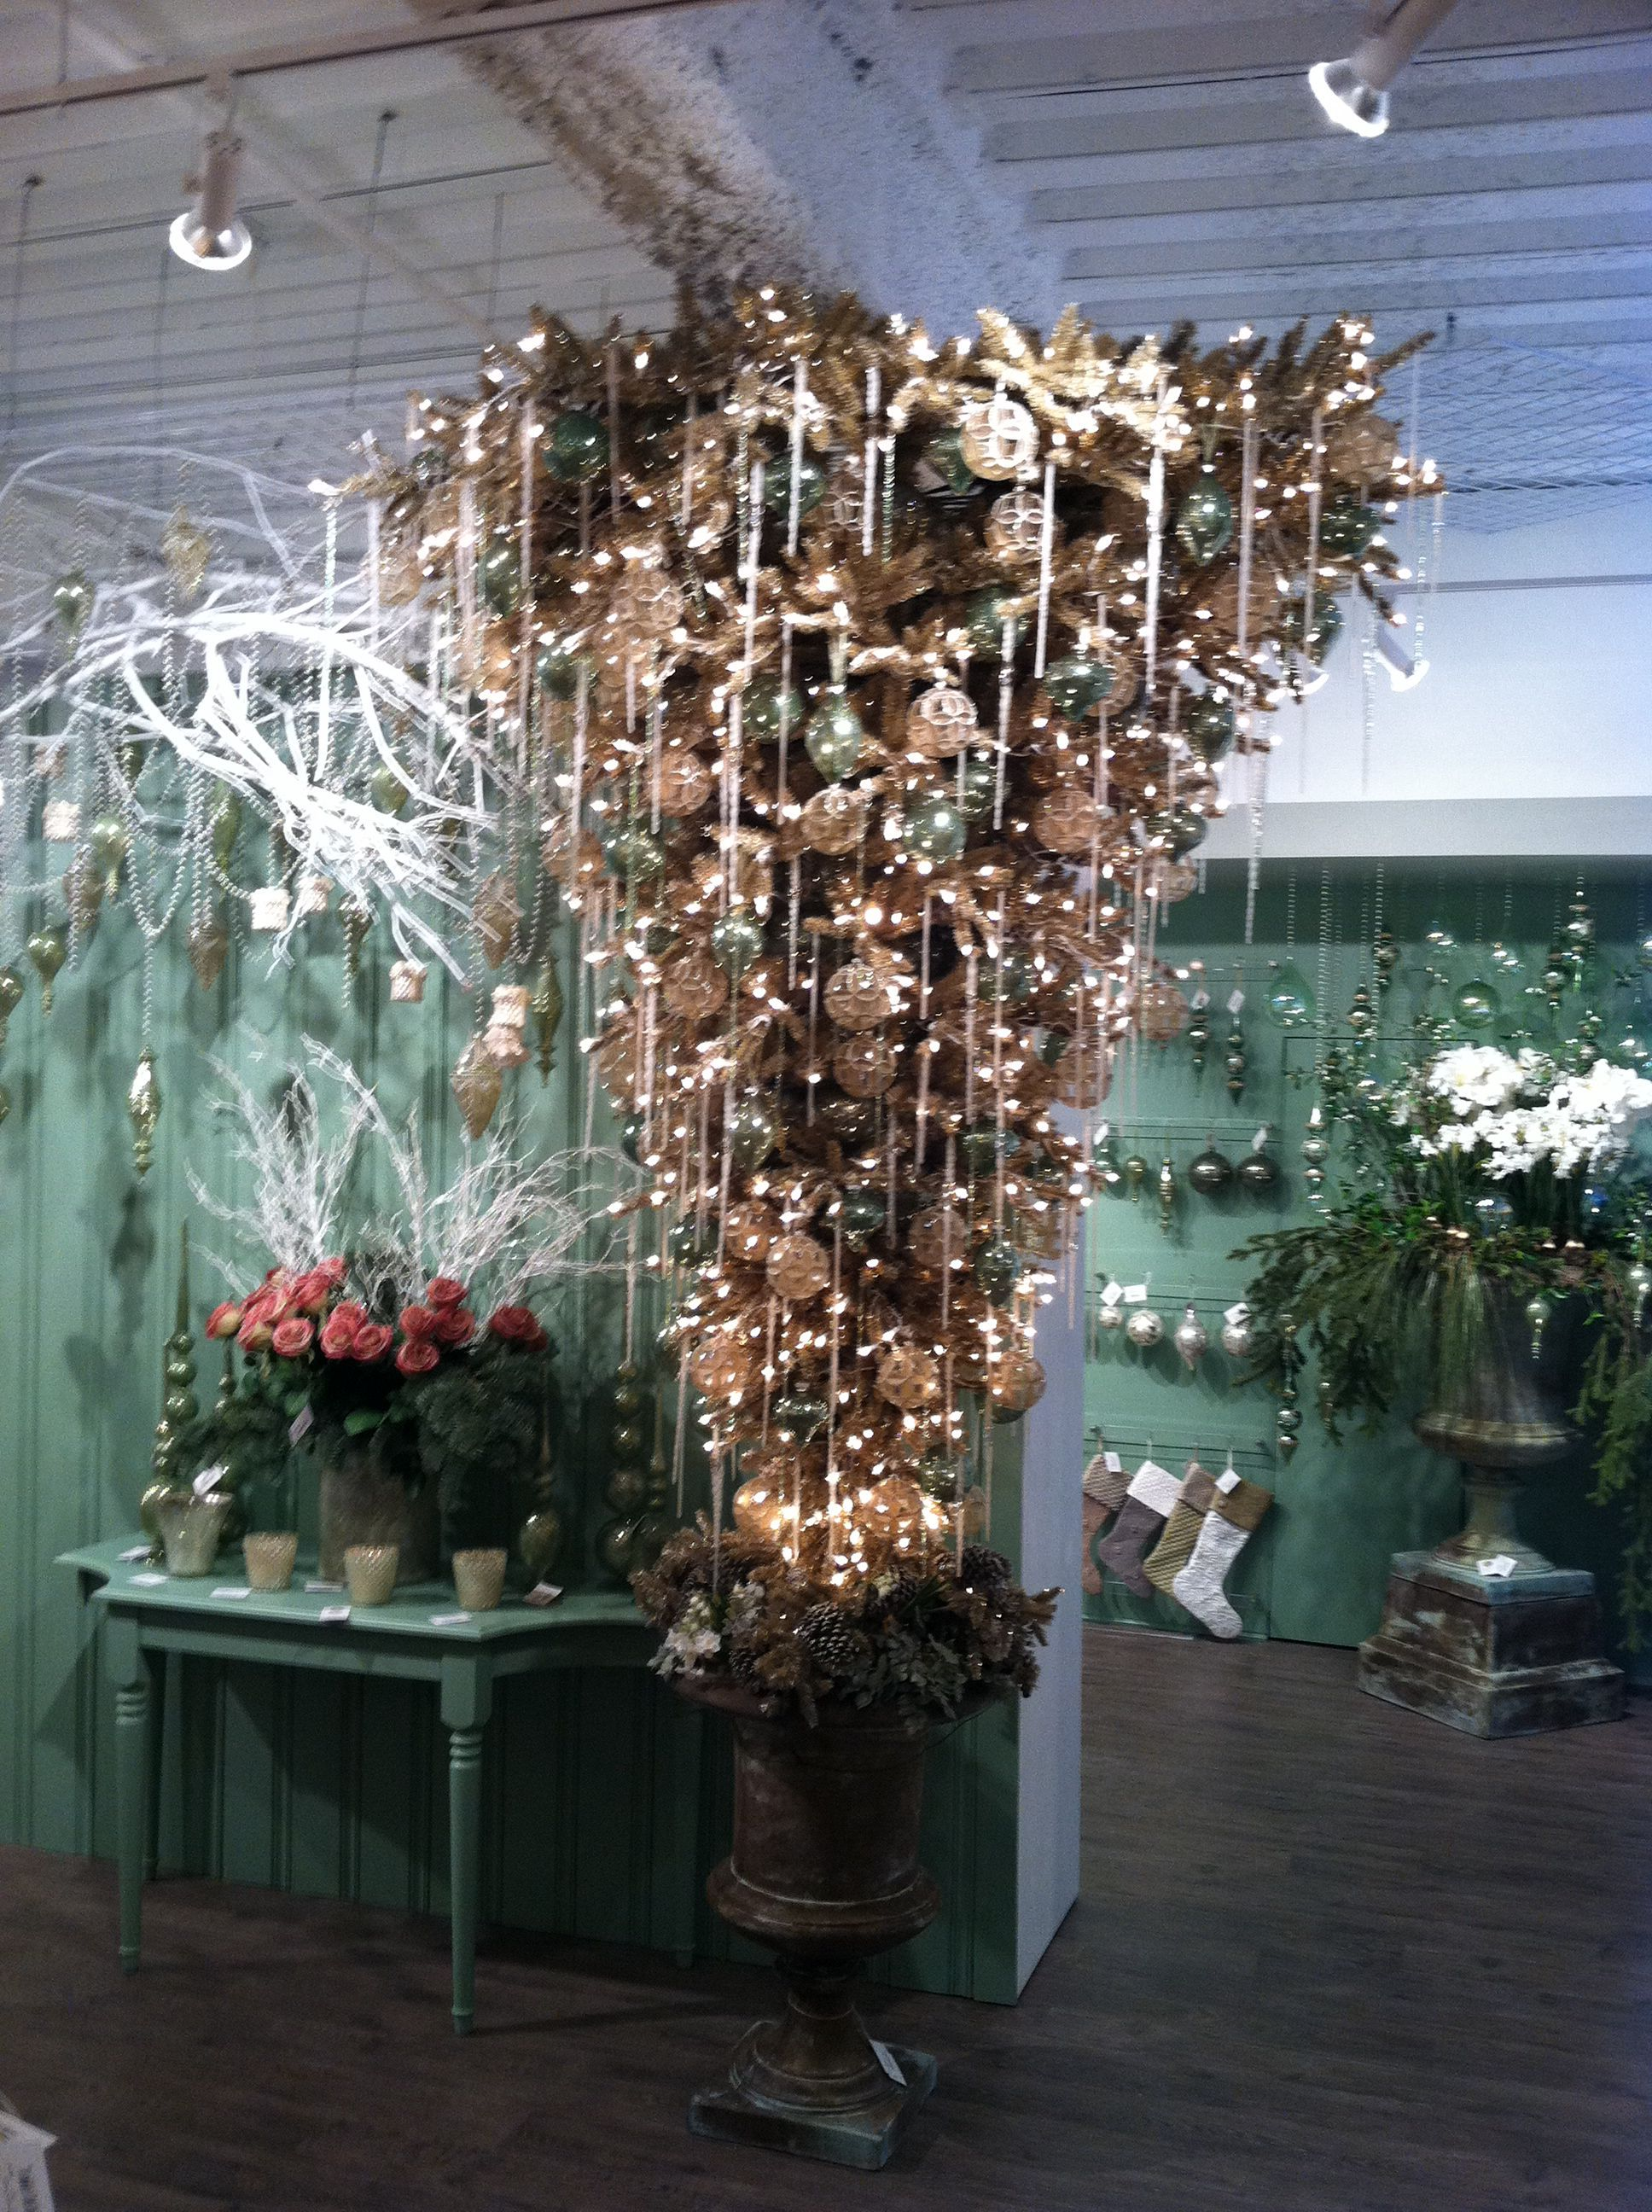 Upside down Christmas tree- hey who says you have to follow convention? Seen at The Dallas Trade Mart showrooms